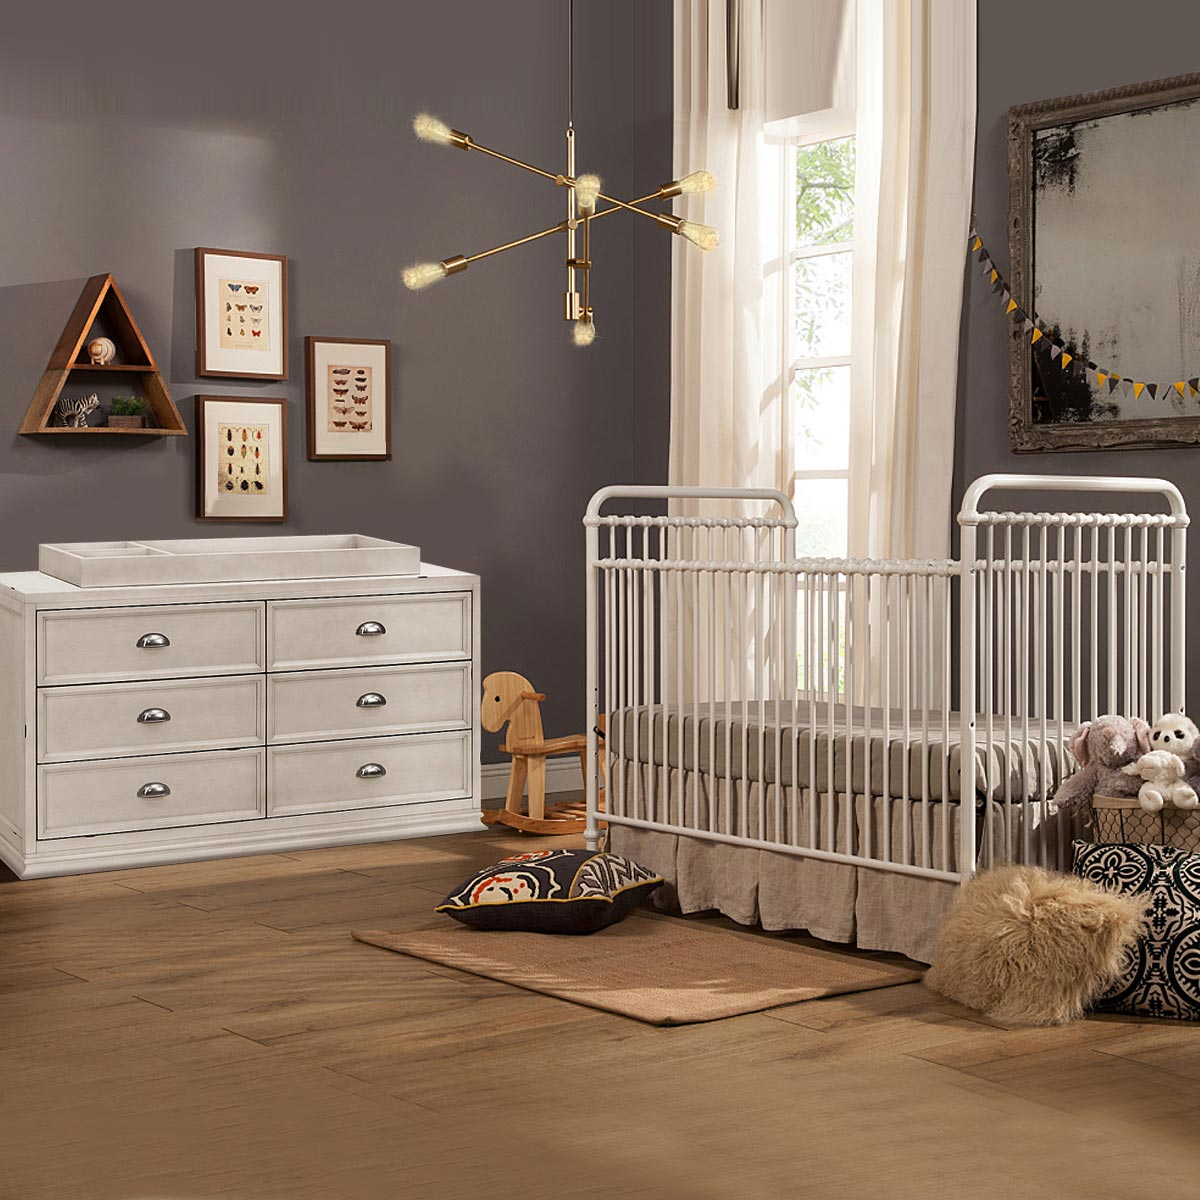 Franklin U0026 Ben Abigail 2 Piece Nursery Set   Convertible Crib In Washed  White And Mason Double Dresser In Distressed White FREE SHIPPING